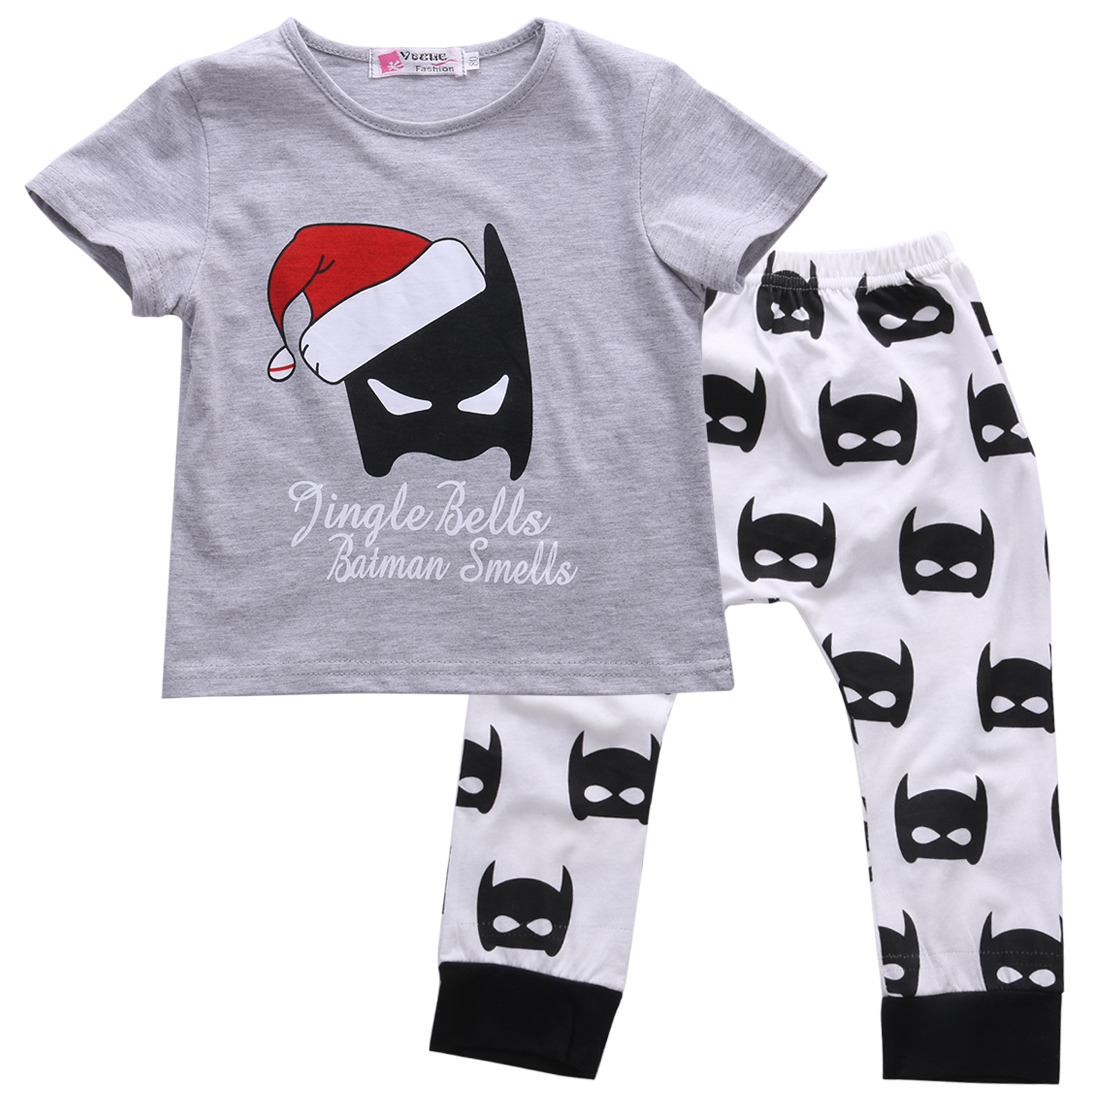 Newborn Kids Baby Boys Girls Christmas Outfits Short Sleeve Tops Cute  Pattern Pants 2pcs Casual Clothes Set 3126c3c07